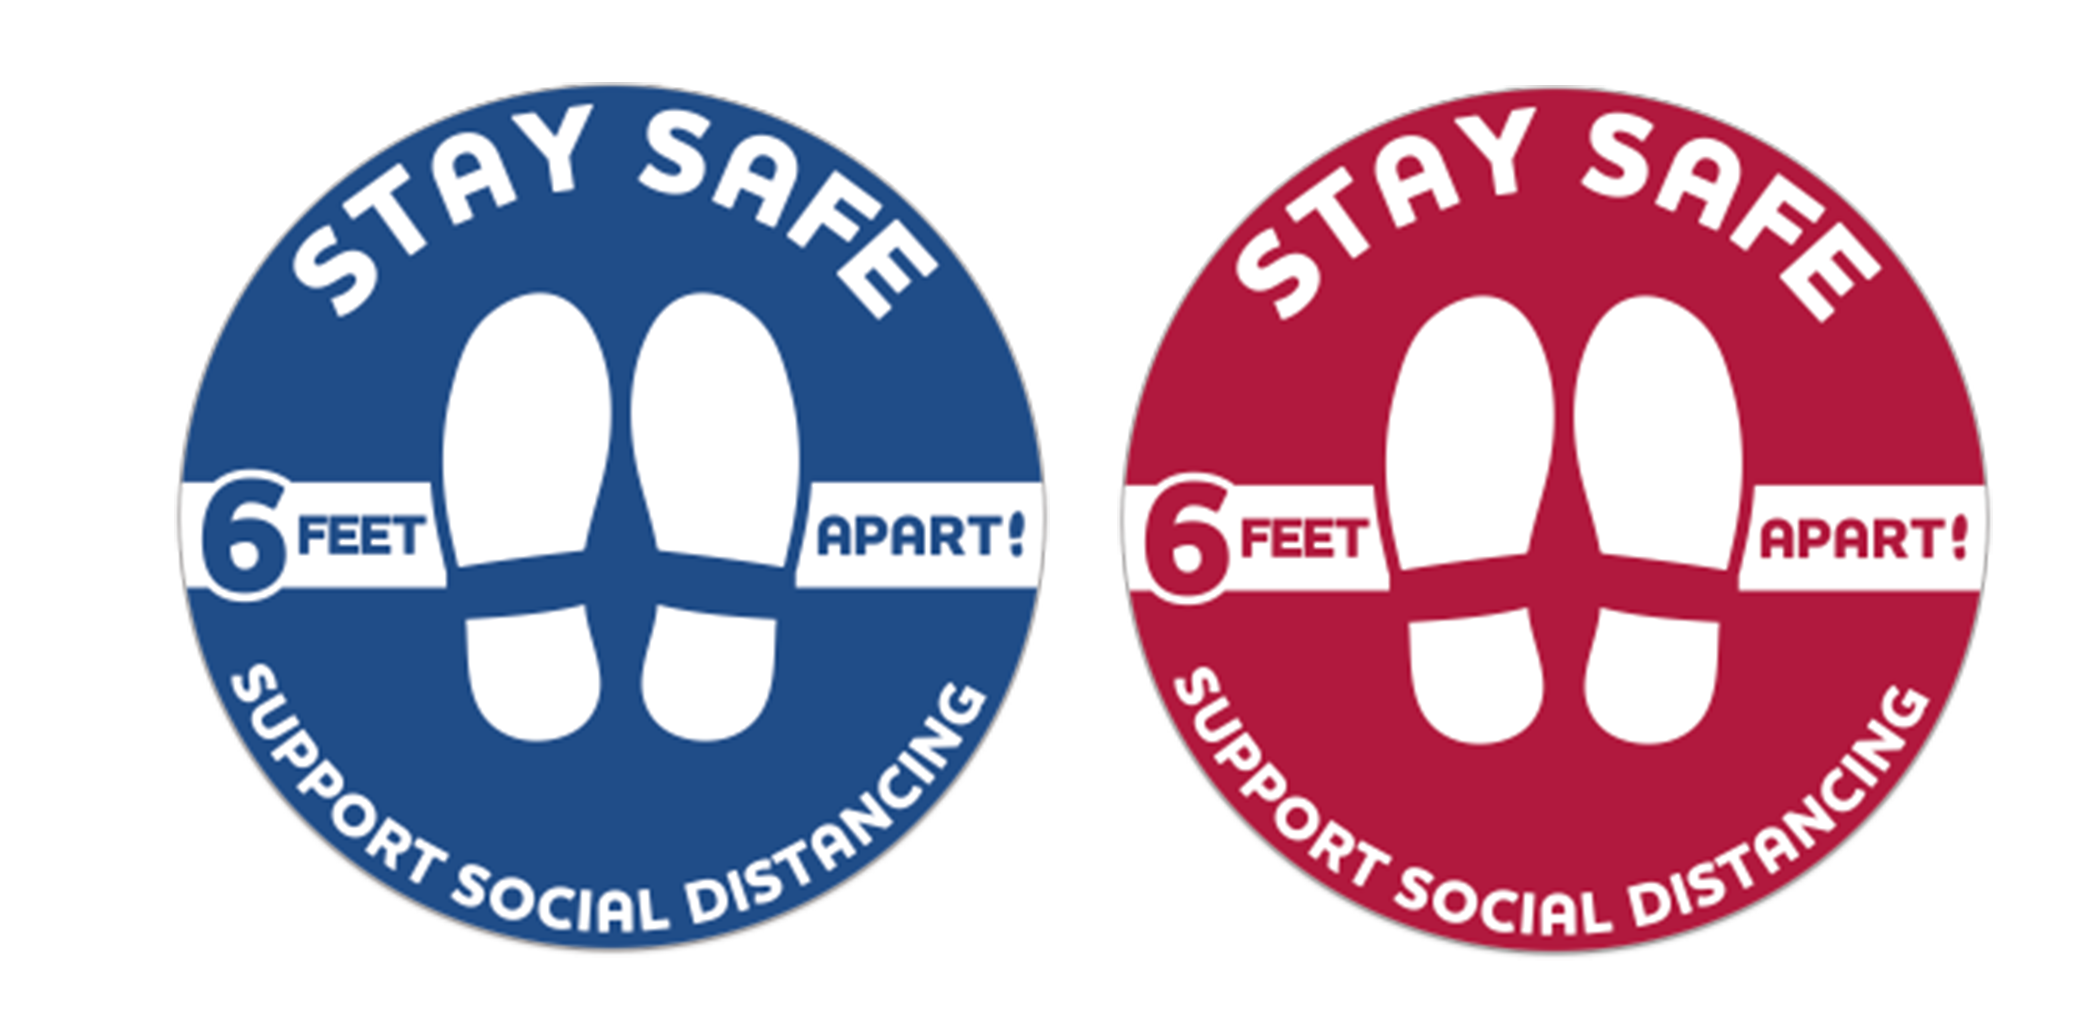 Stay Safe Floor Decals - Round